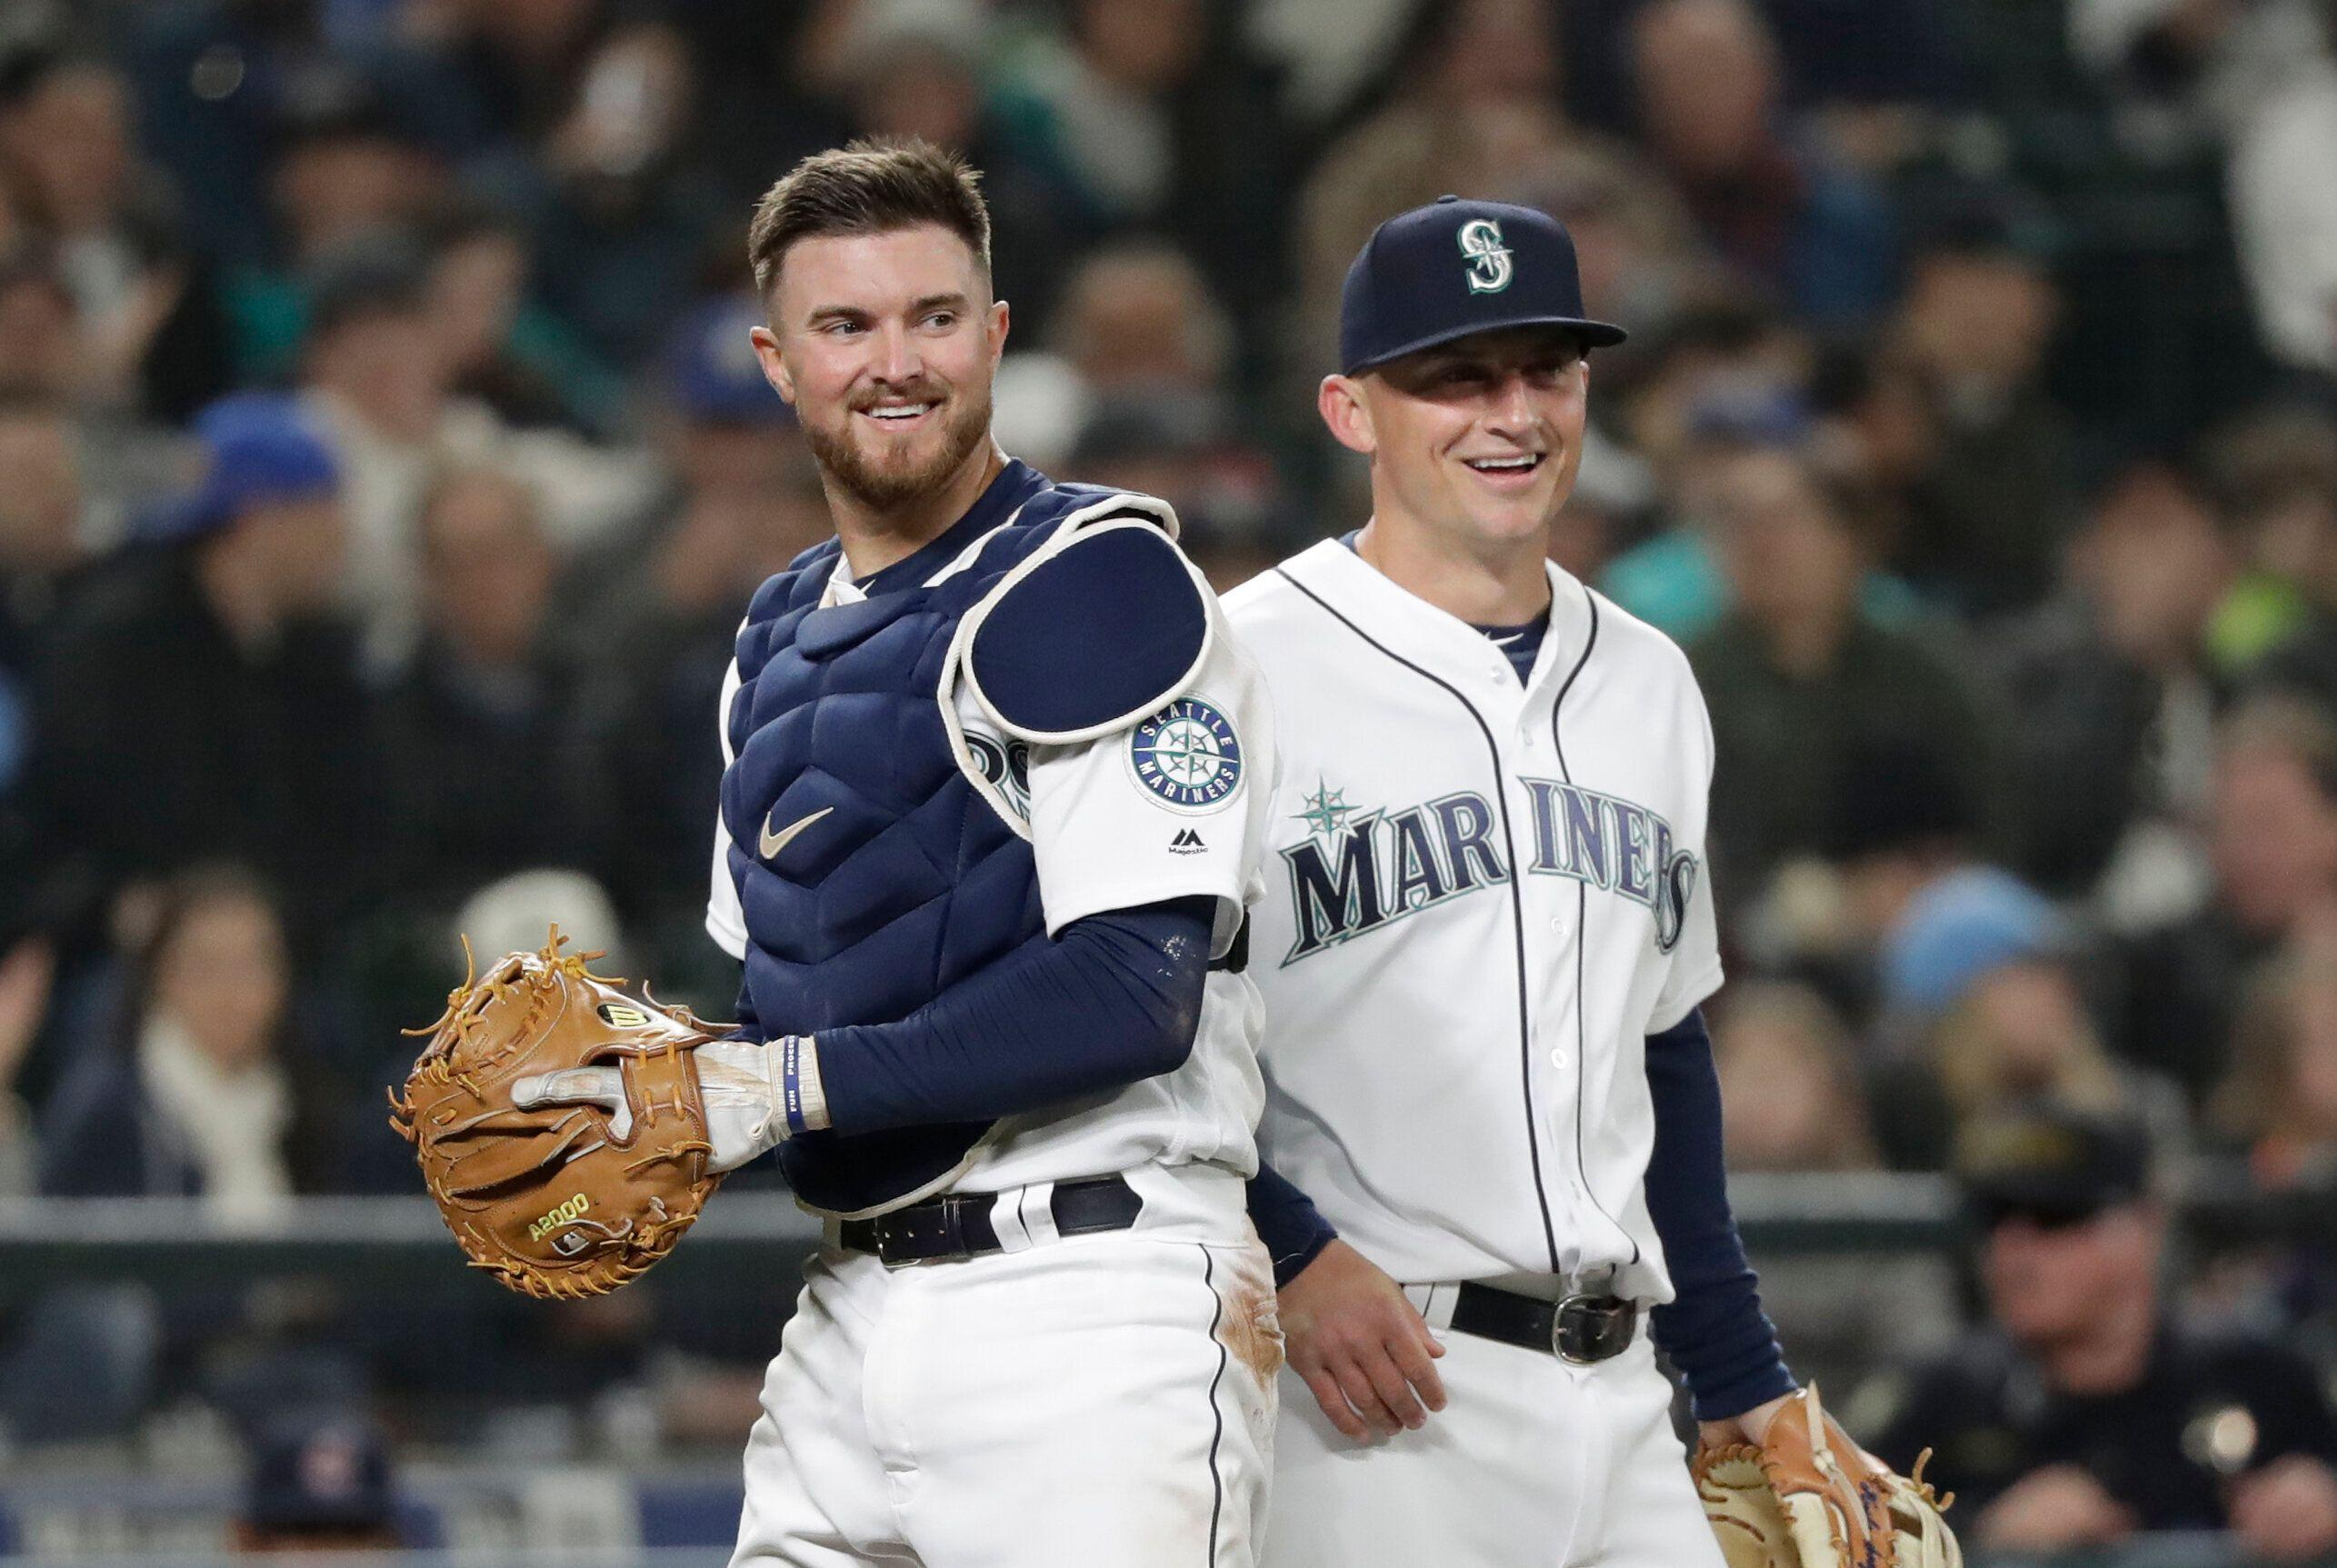 Mike Marjama Retired Ex Mariners Catcher Suspended For Peds